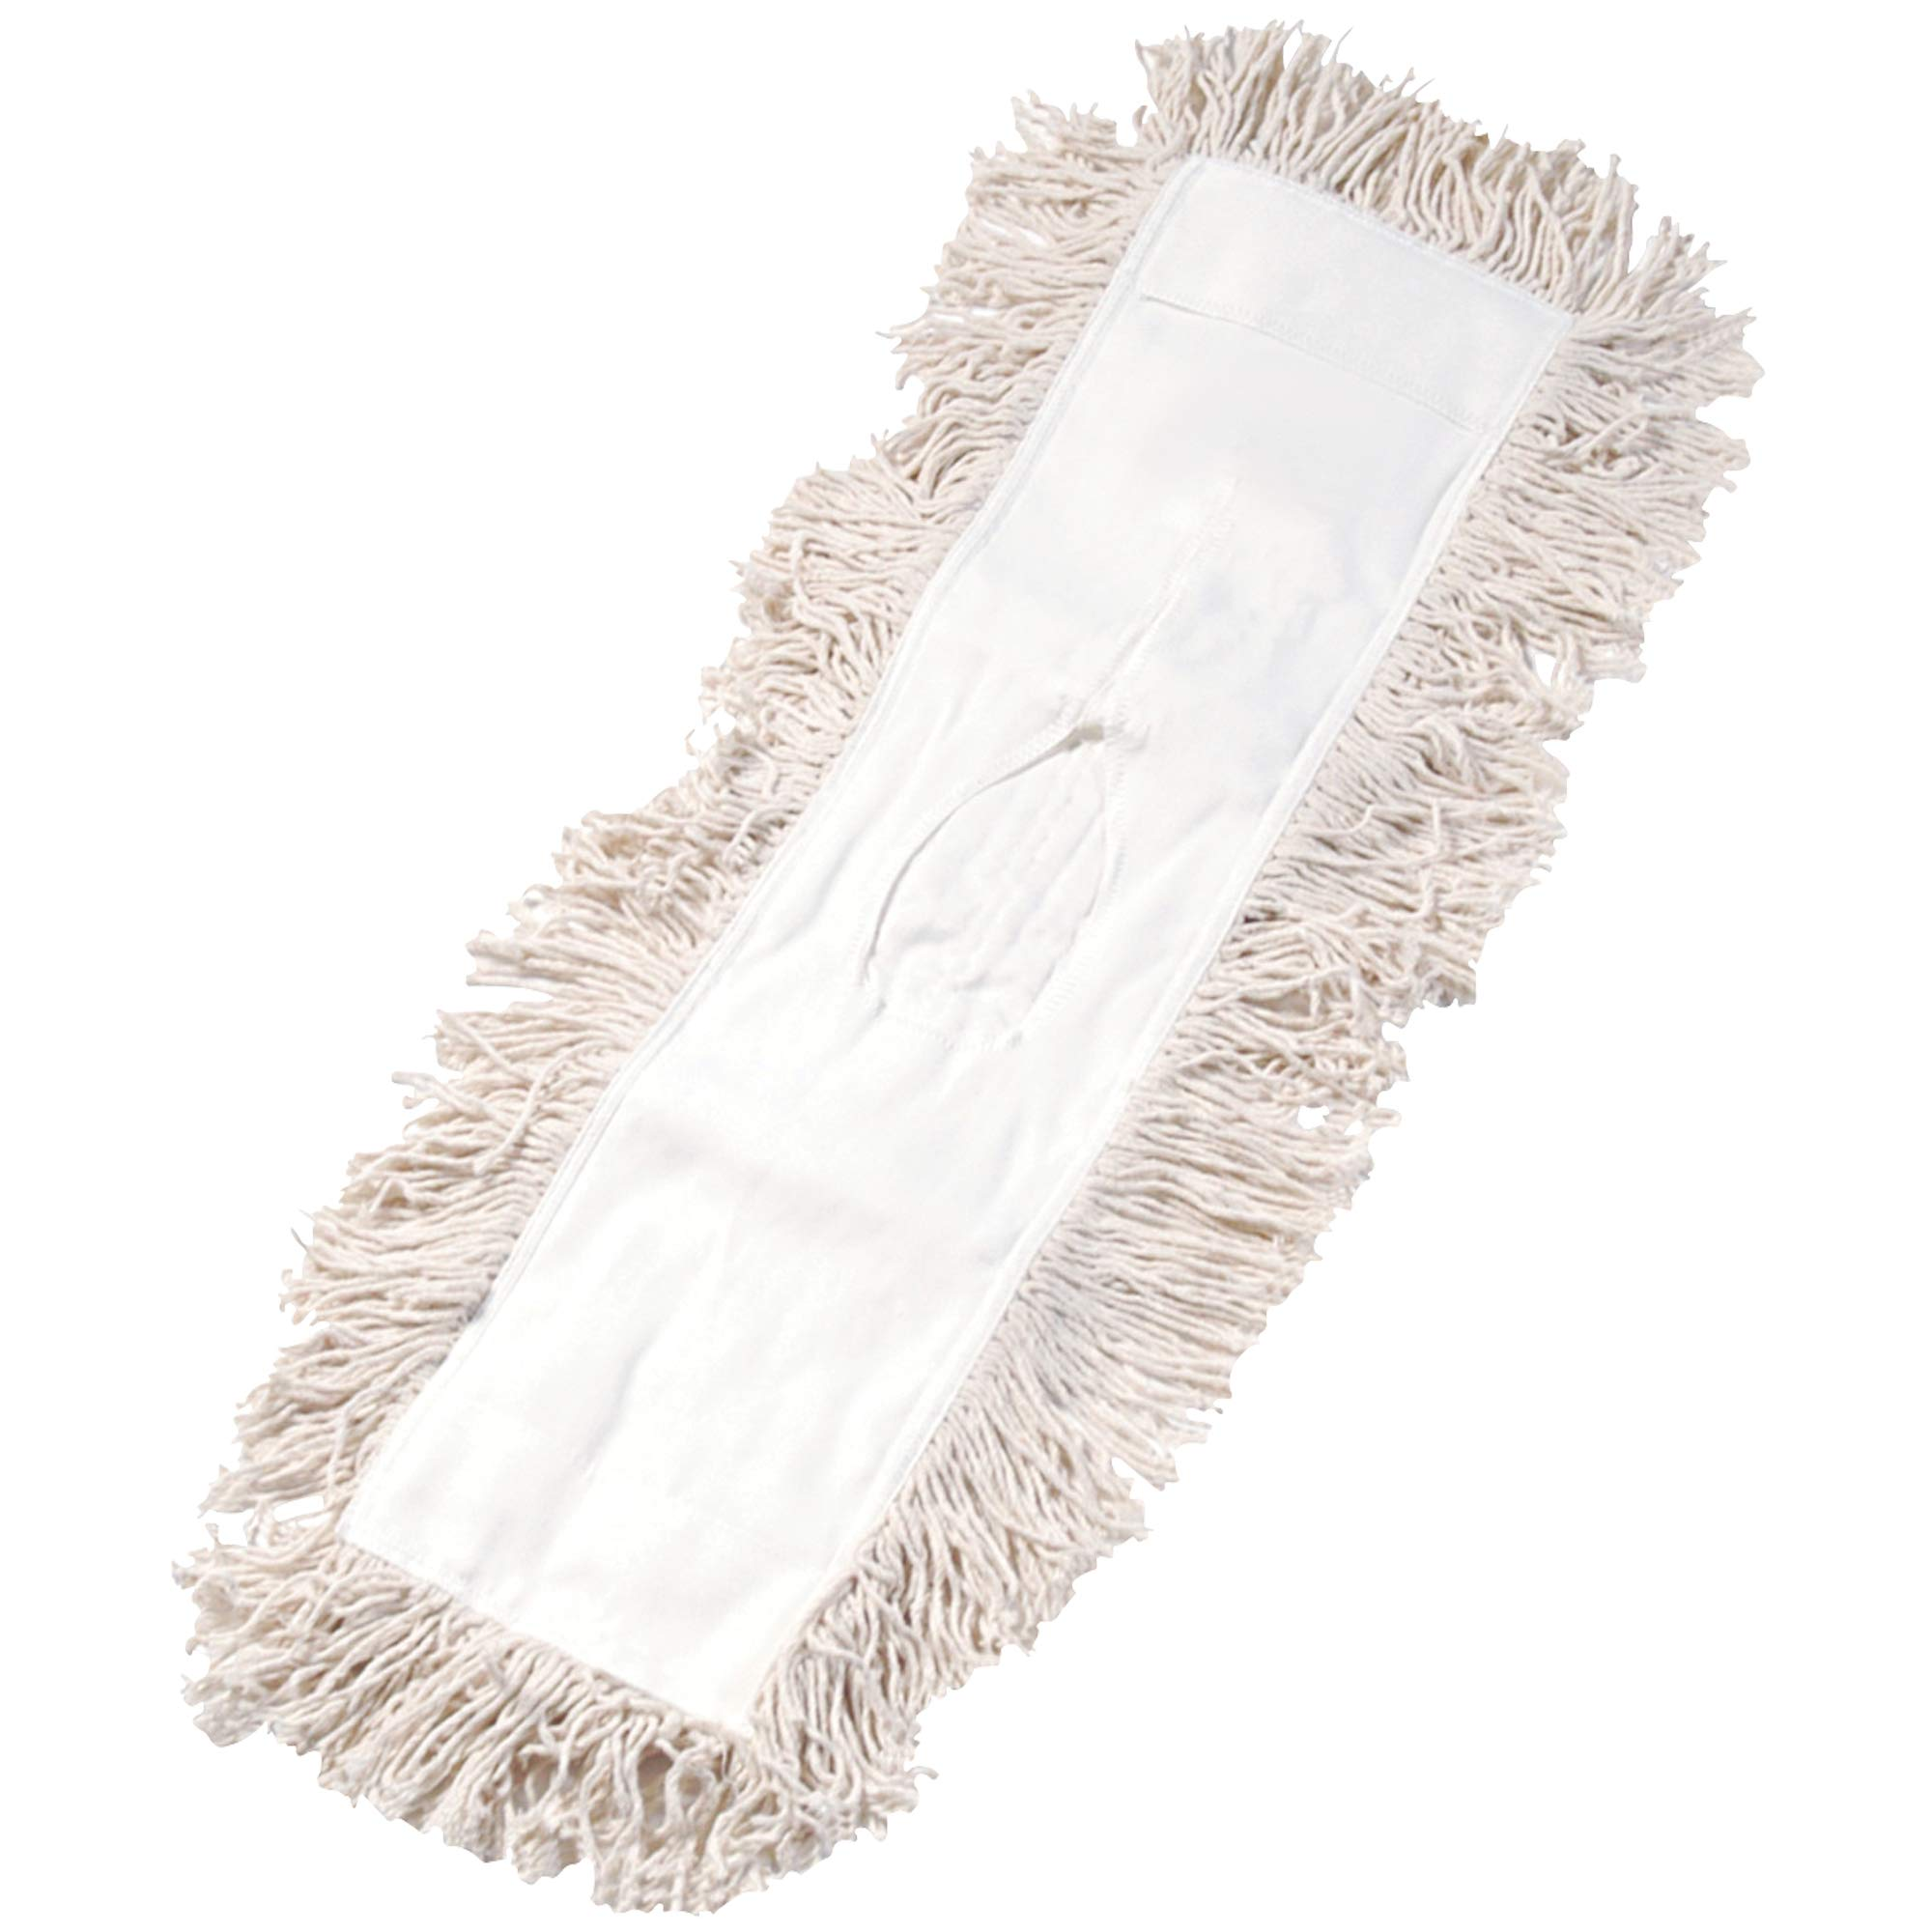 Economy Cut-End Dust Mop Head, 24'', White, 1/Each by Boxes Fast